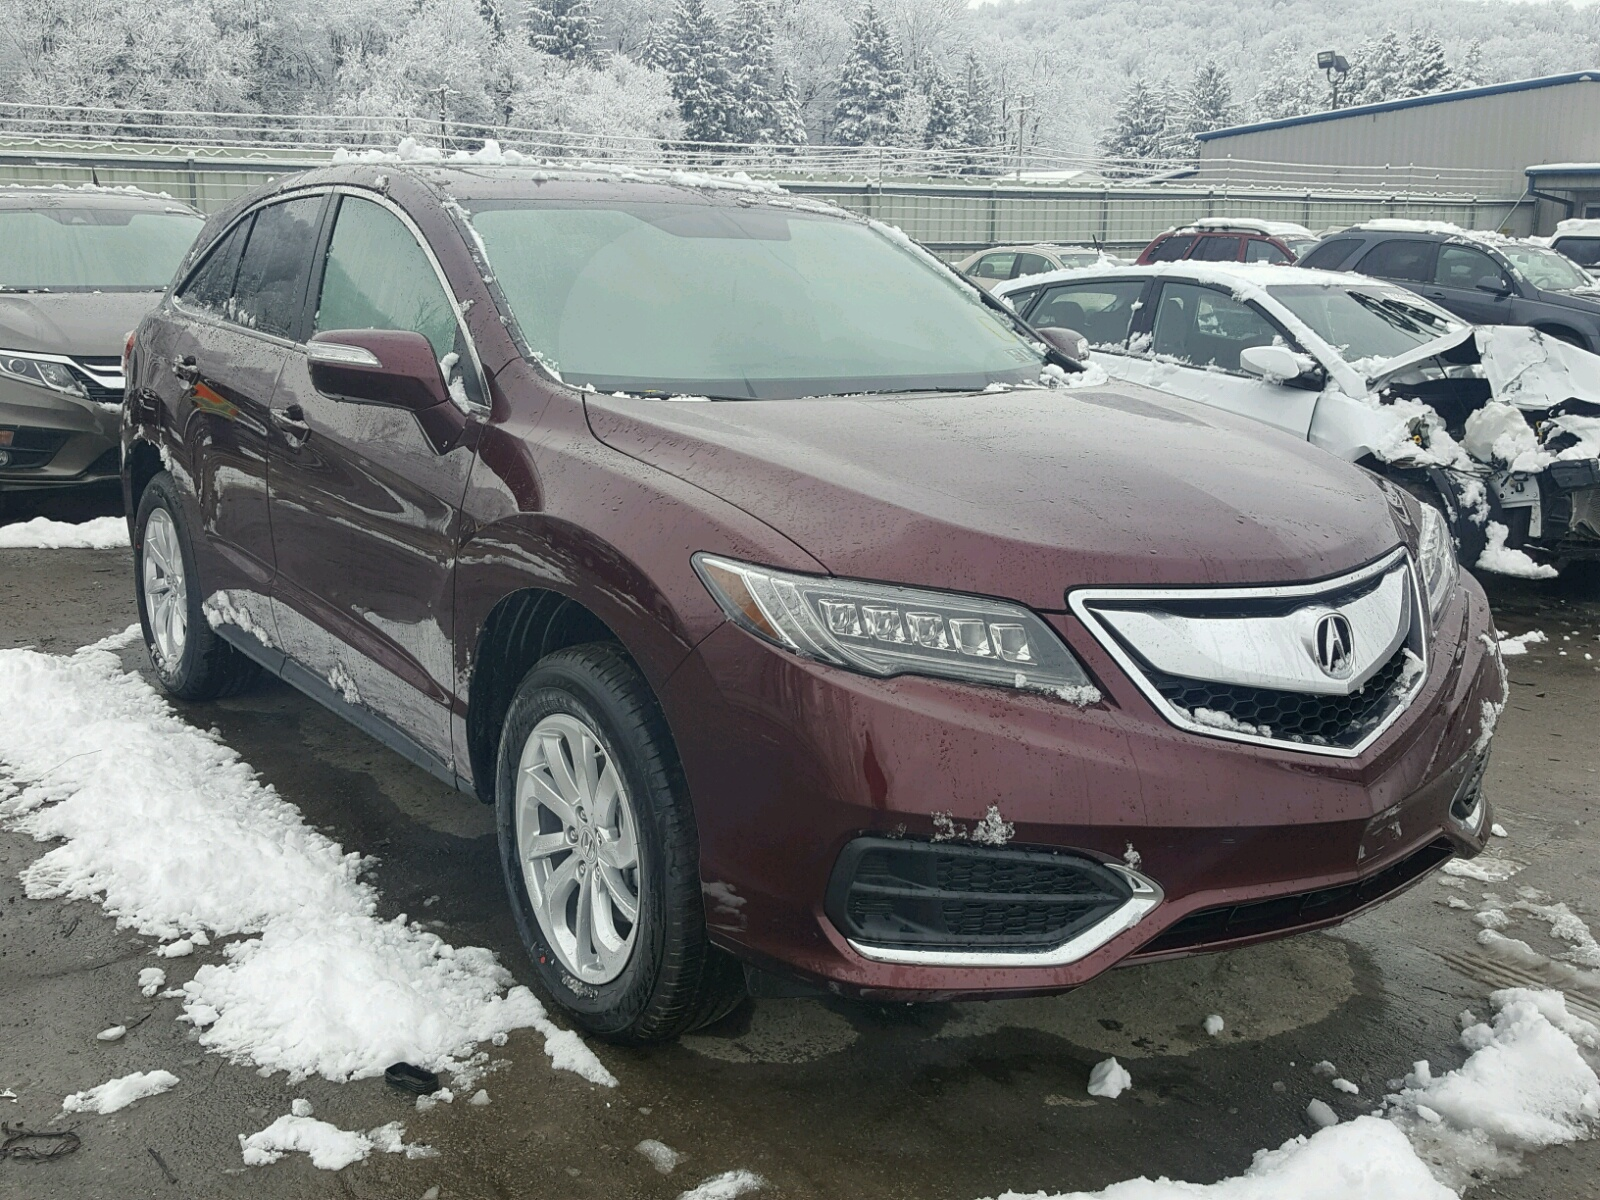 for left carfinder en lot sale online auto in of on certificate rdx dc md title view copart acura silver auctions washington